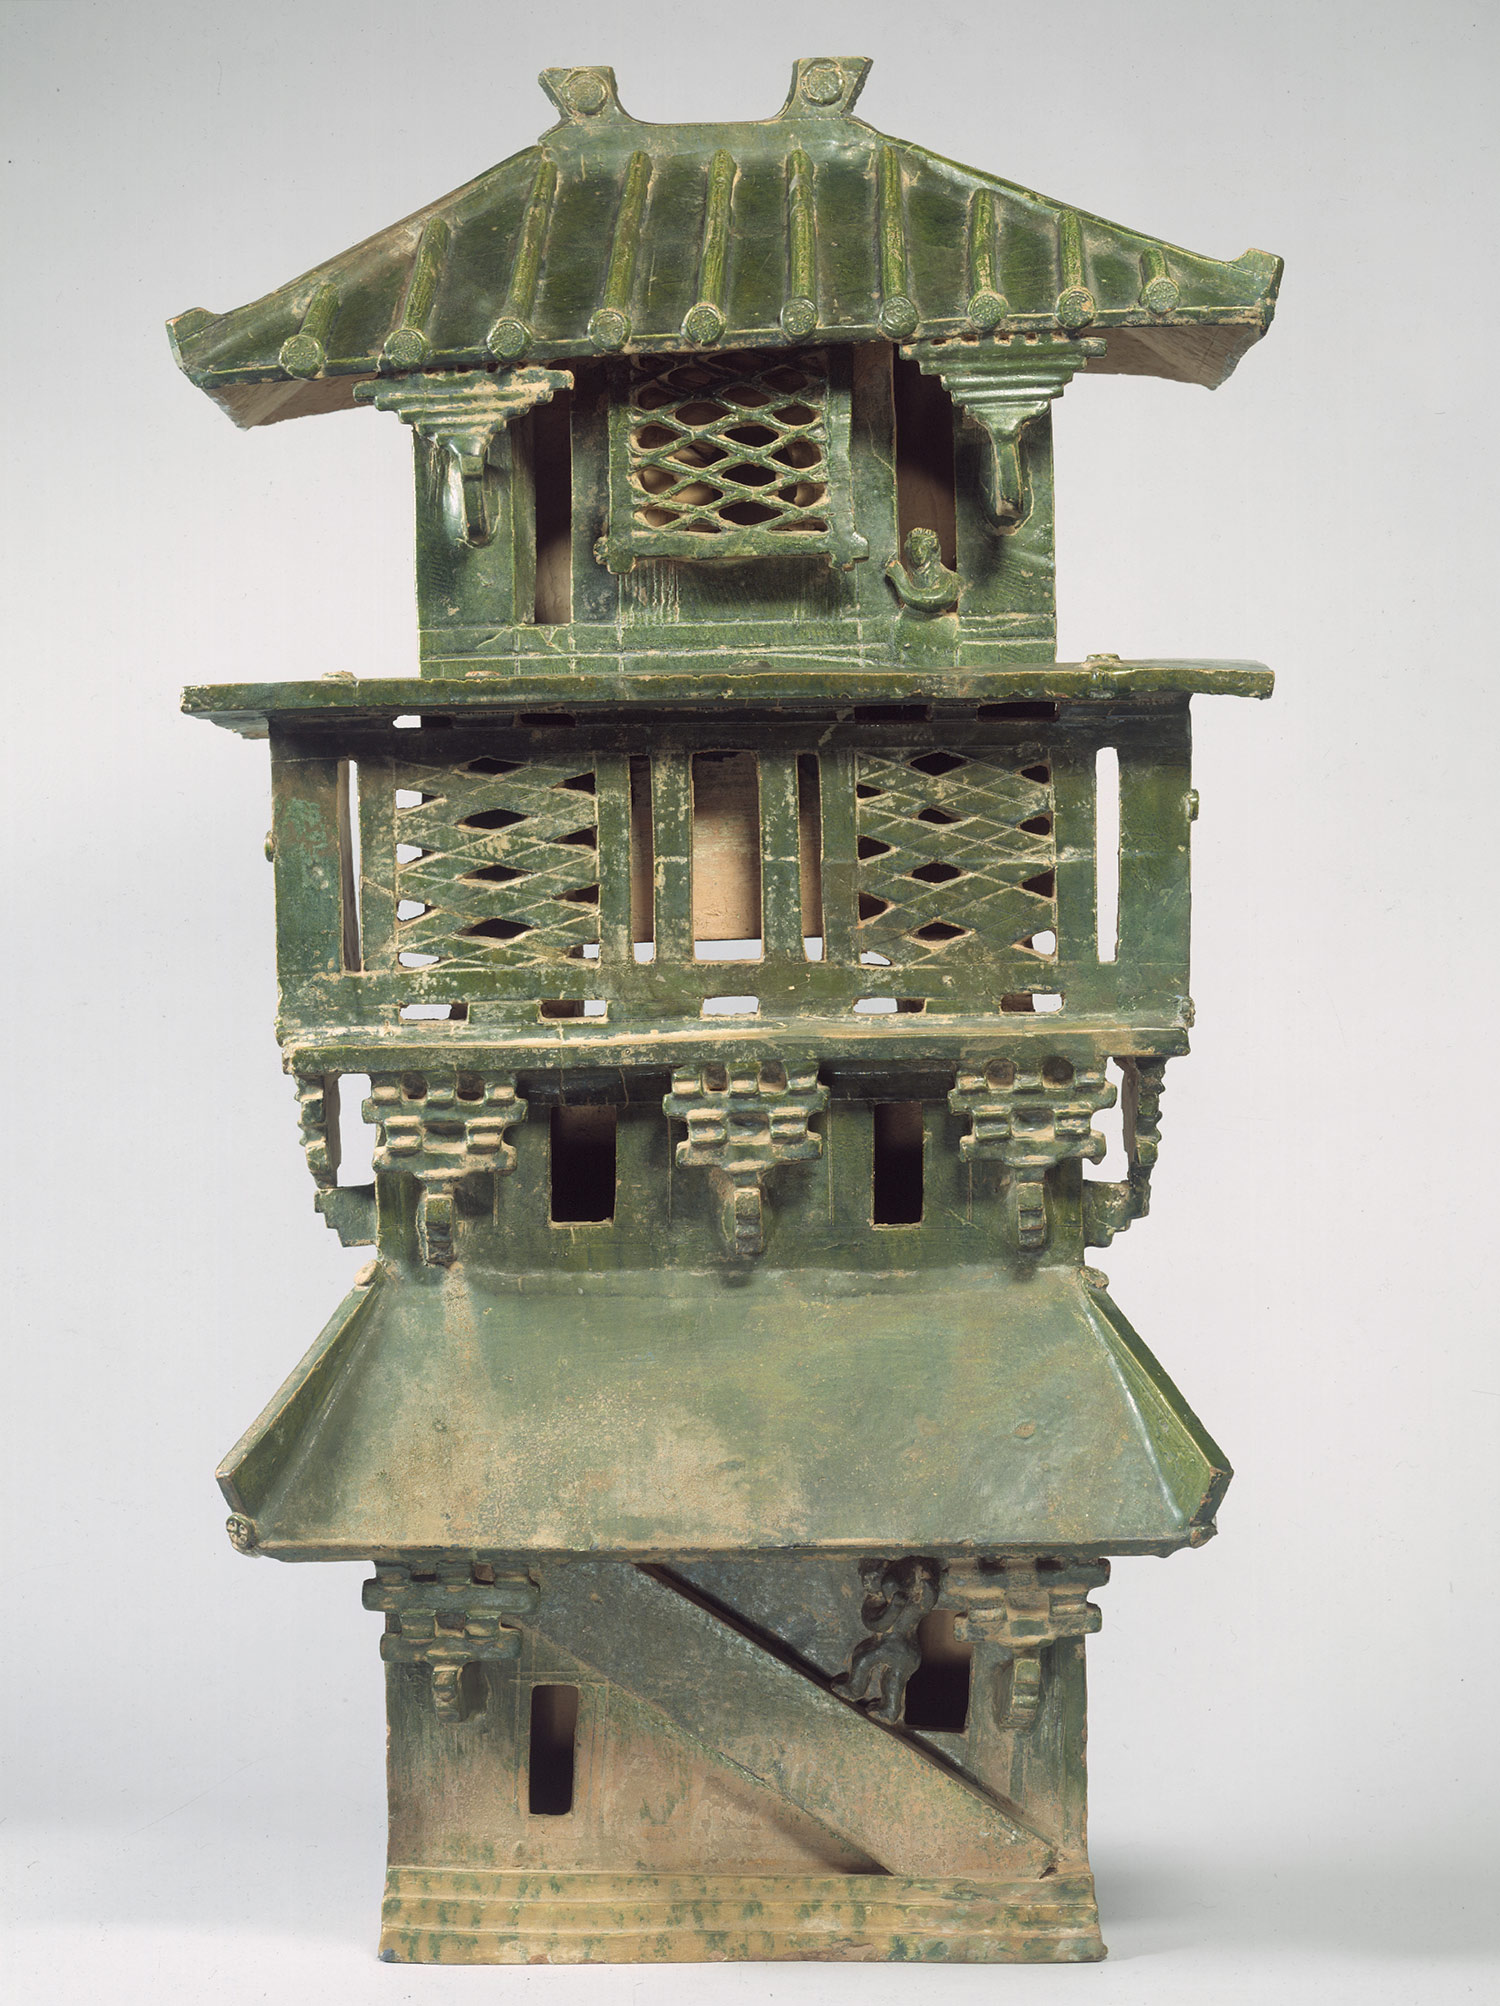 Pond39s asian studies blog han dynasty 202 bc 220 ad for Shang dynasty art and architecture